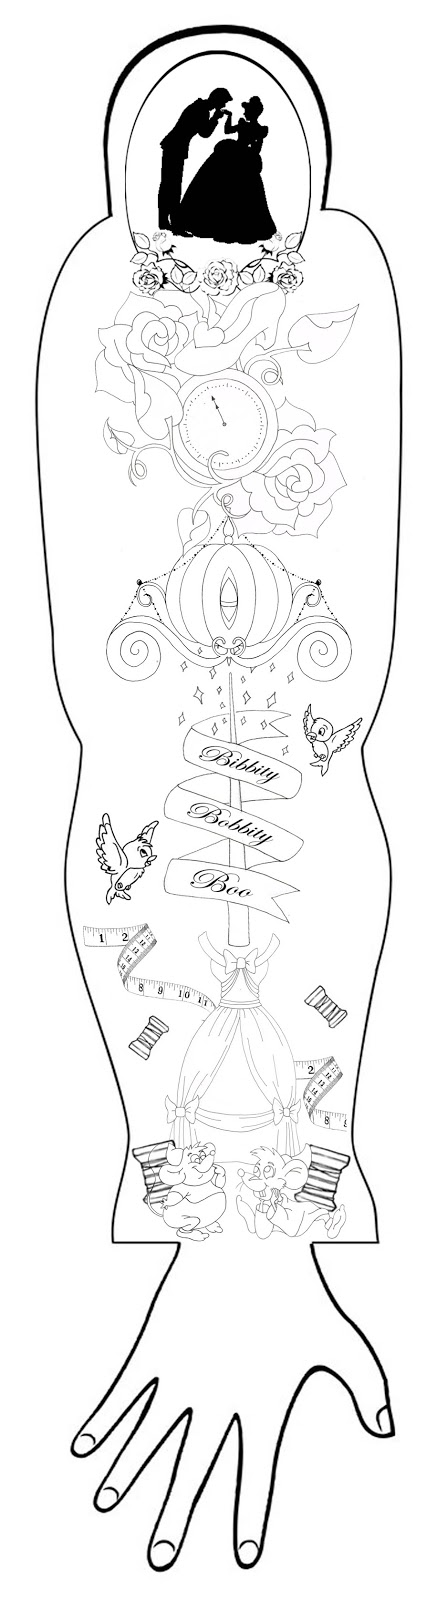 Pin by Travis Nelson Mayer on tattoo template | Pinterest | Arm ...